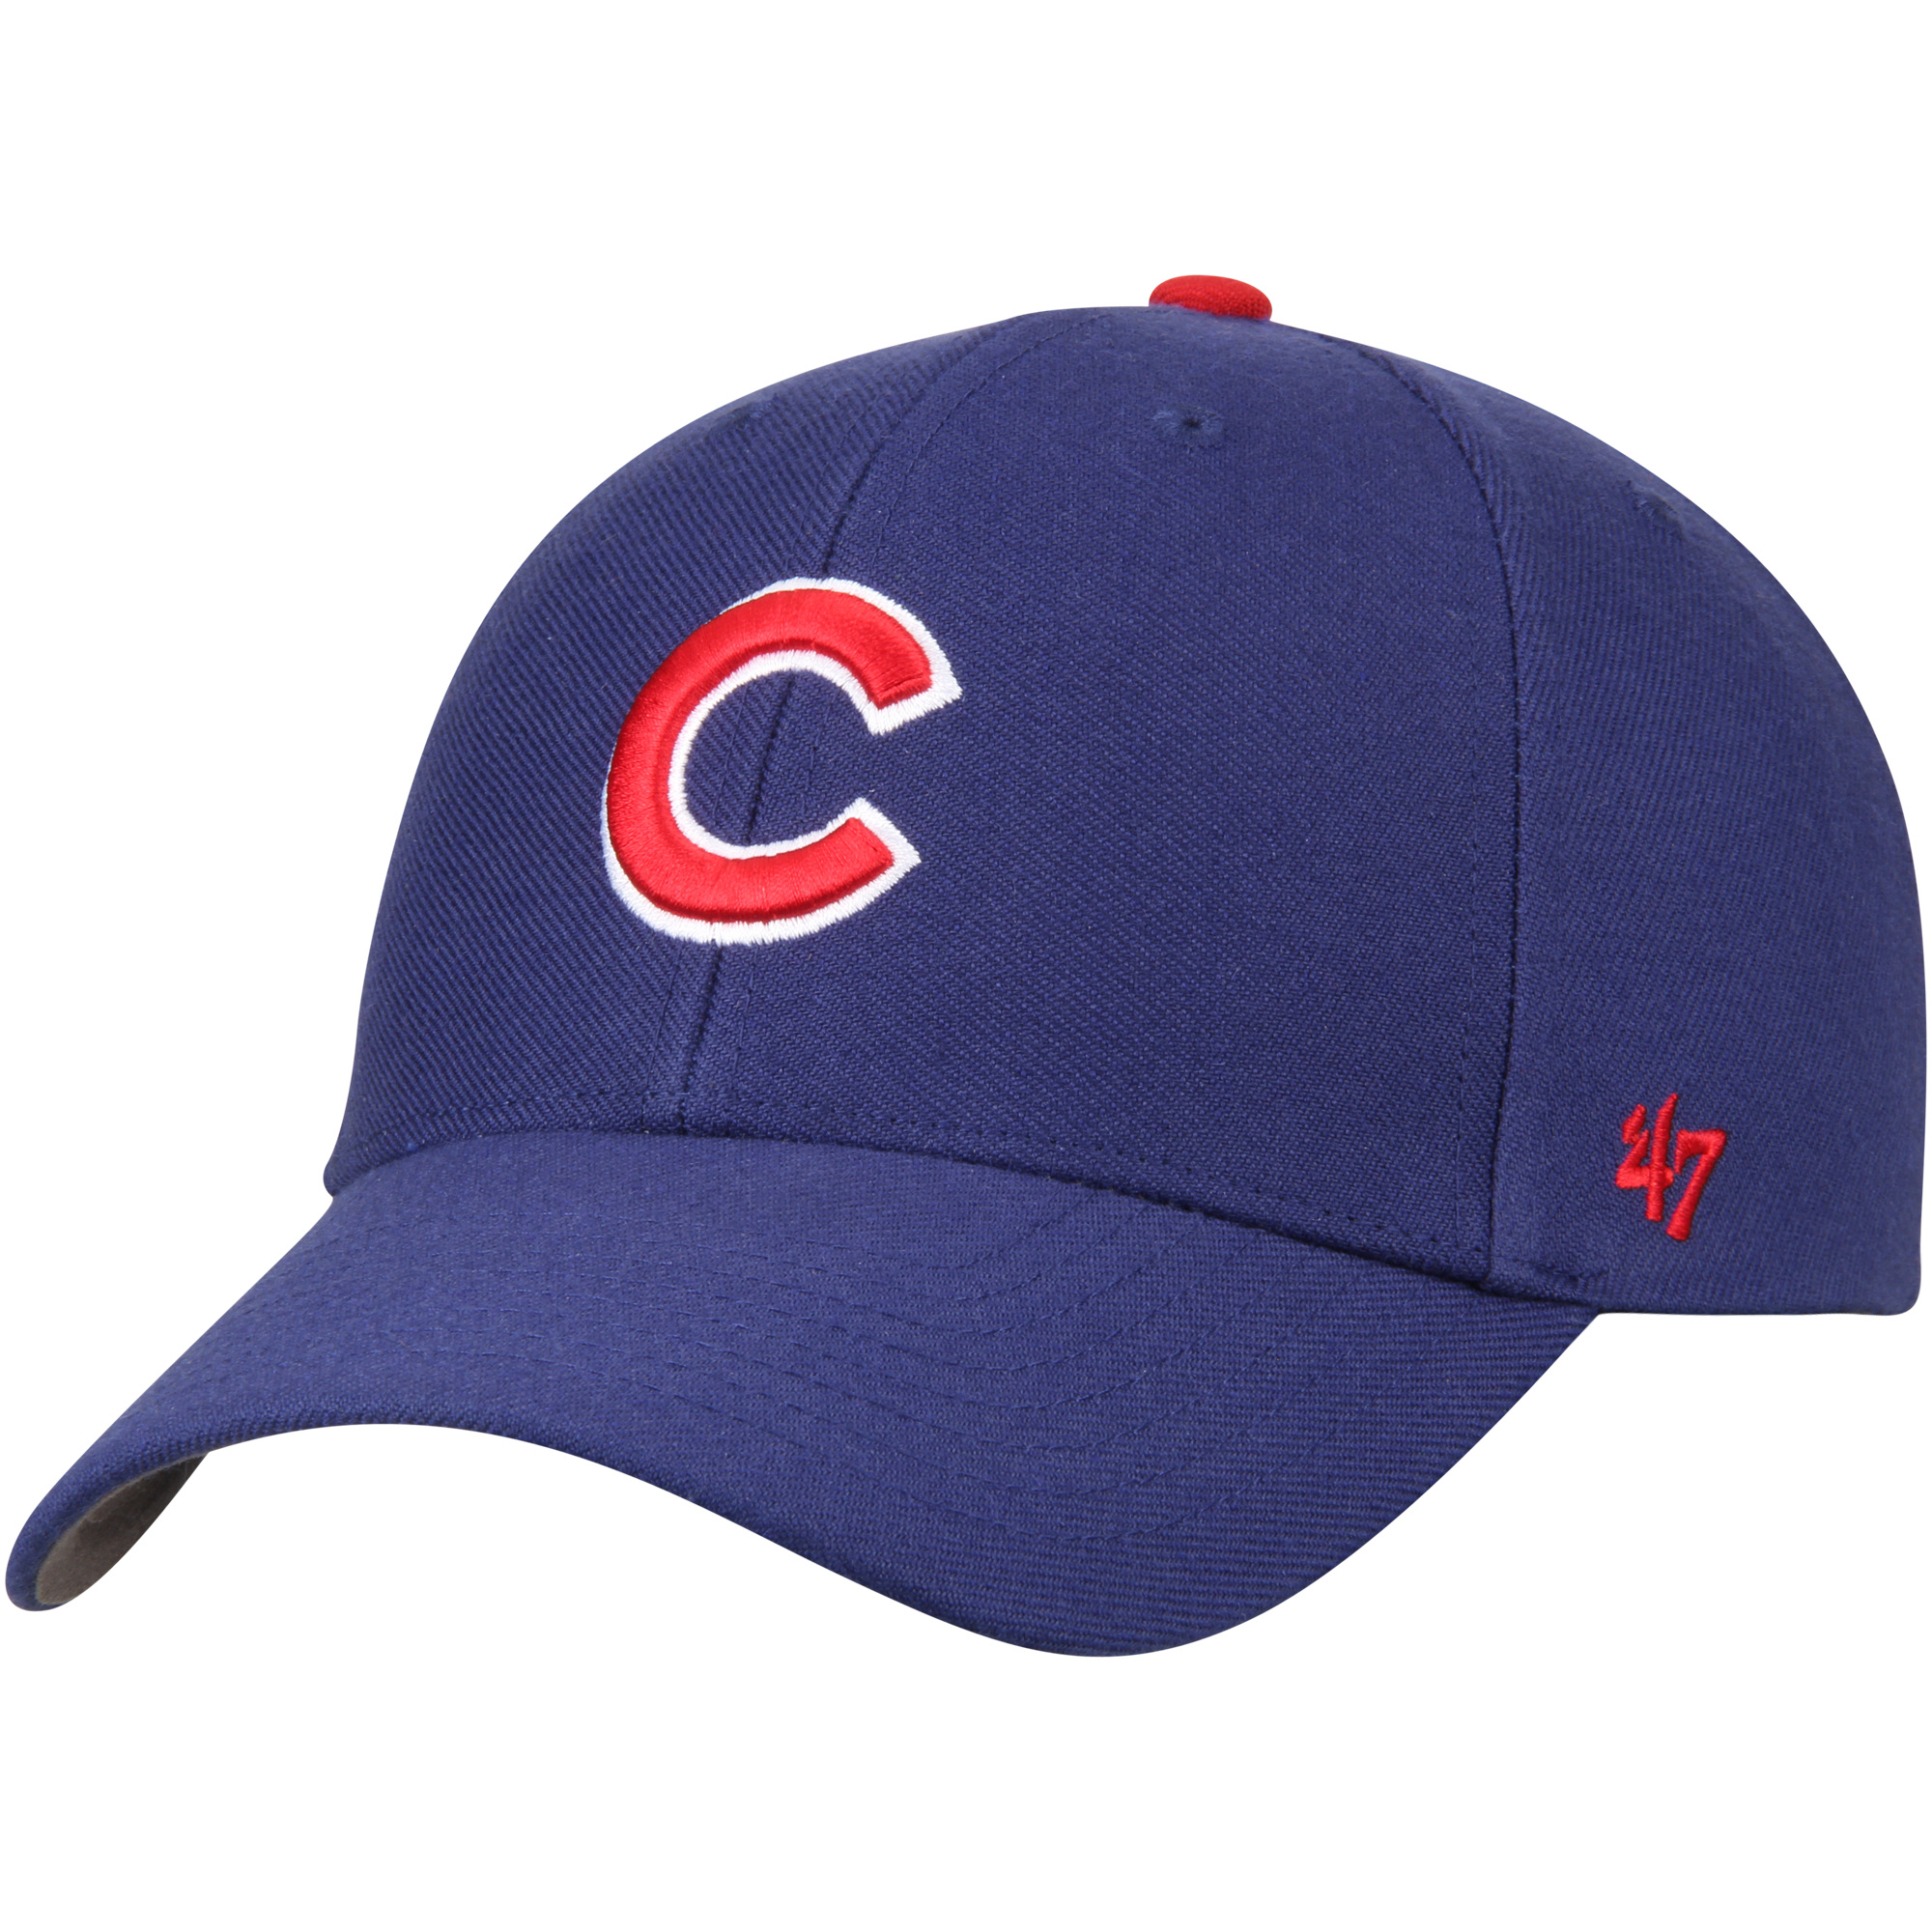 Chicago Cubs '47 MVP Wool Adjustable Hat - Royal - OSFA